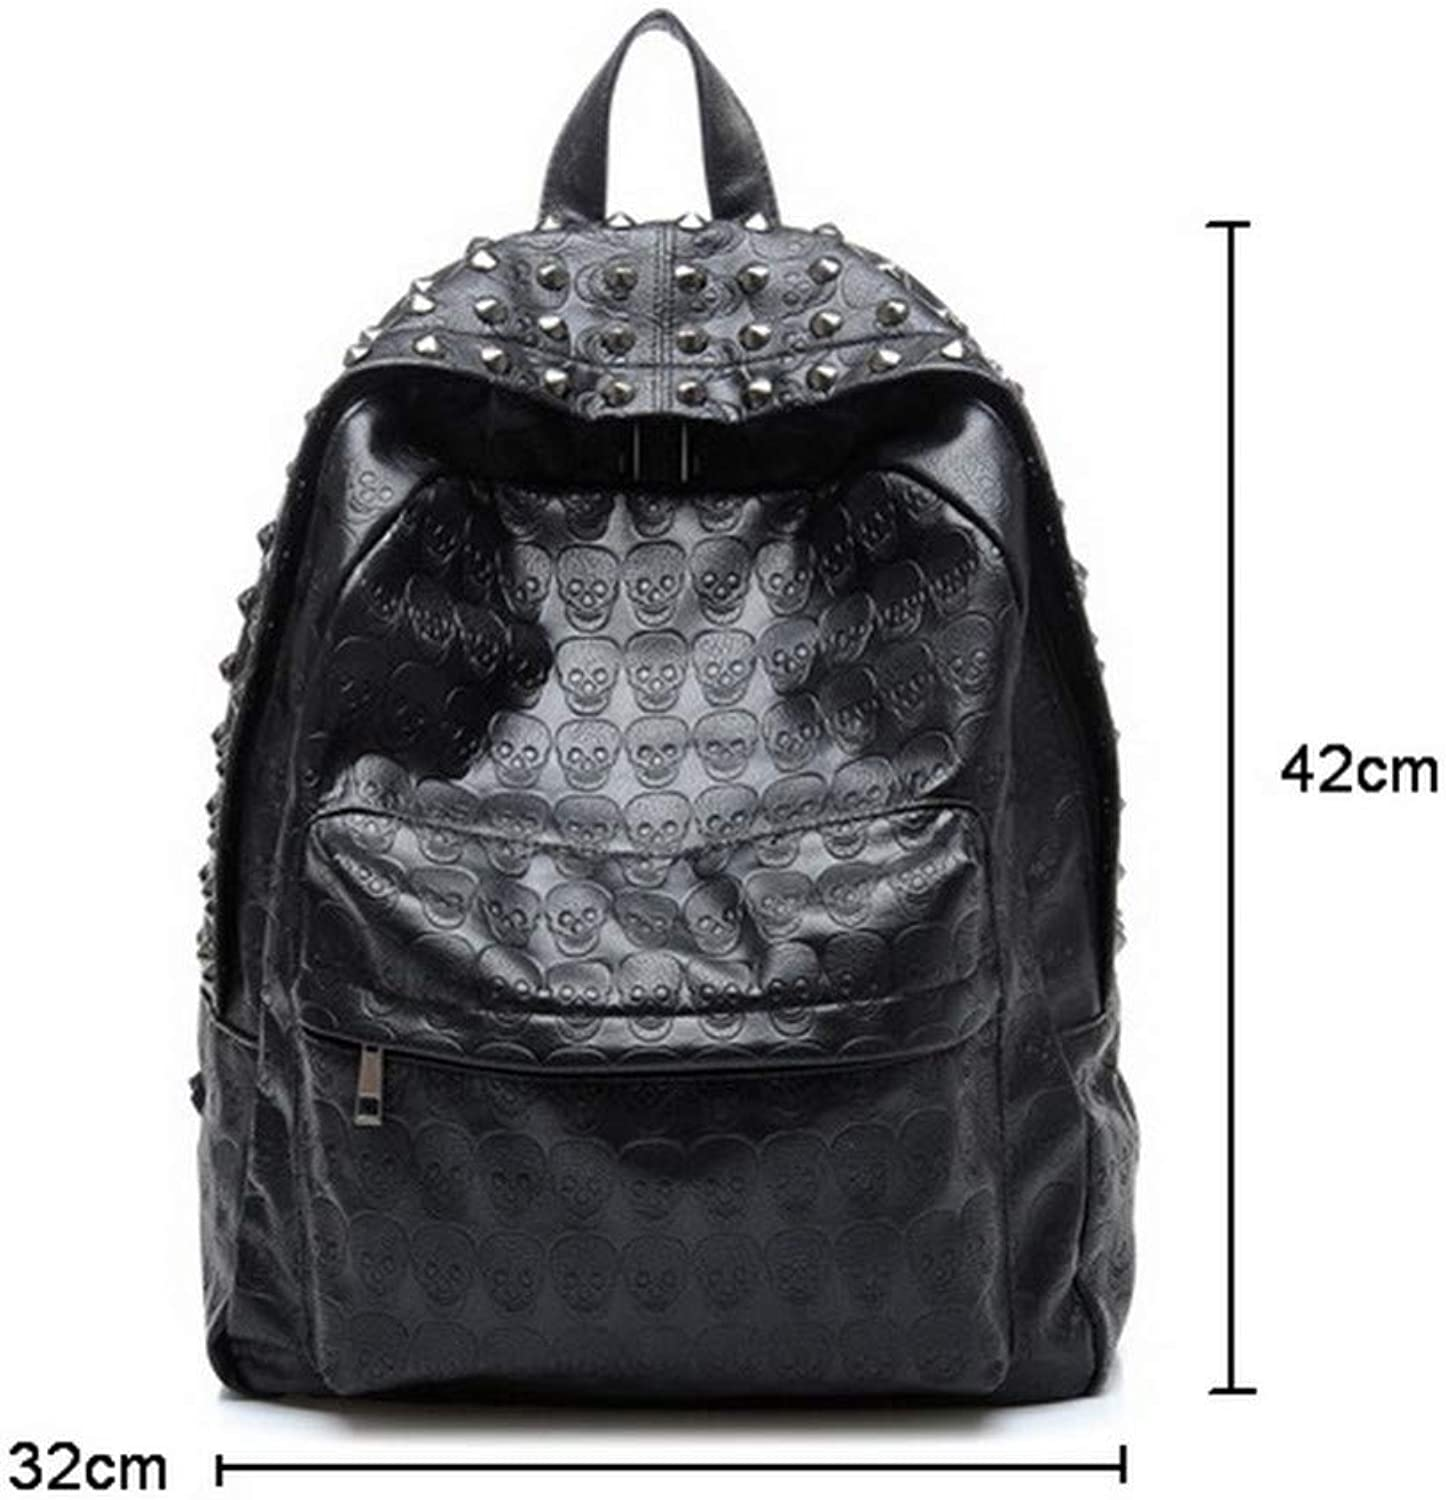 HUYANNABAO Fashion Luxury Leather Ladies' Backpack Large Capacity Travel Bag Punk Style Youth Casual School Bag Knapsack